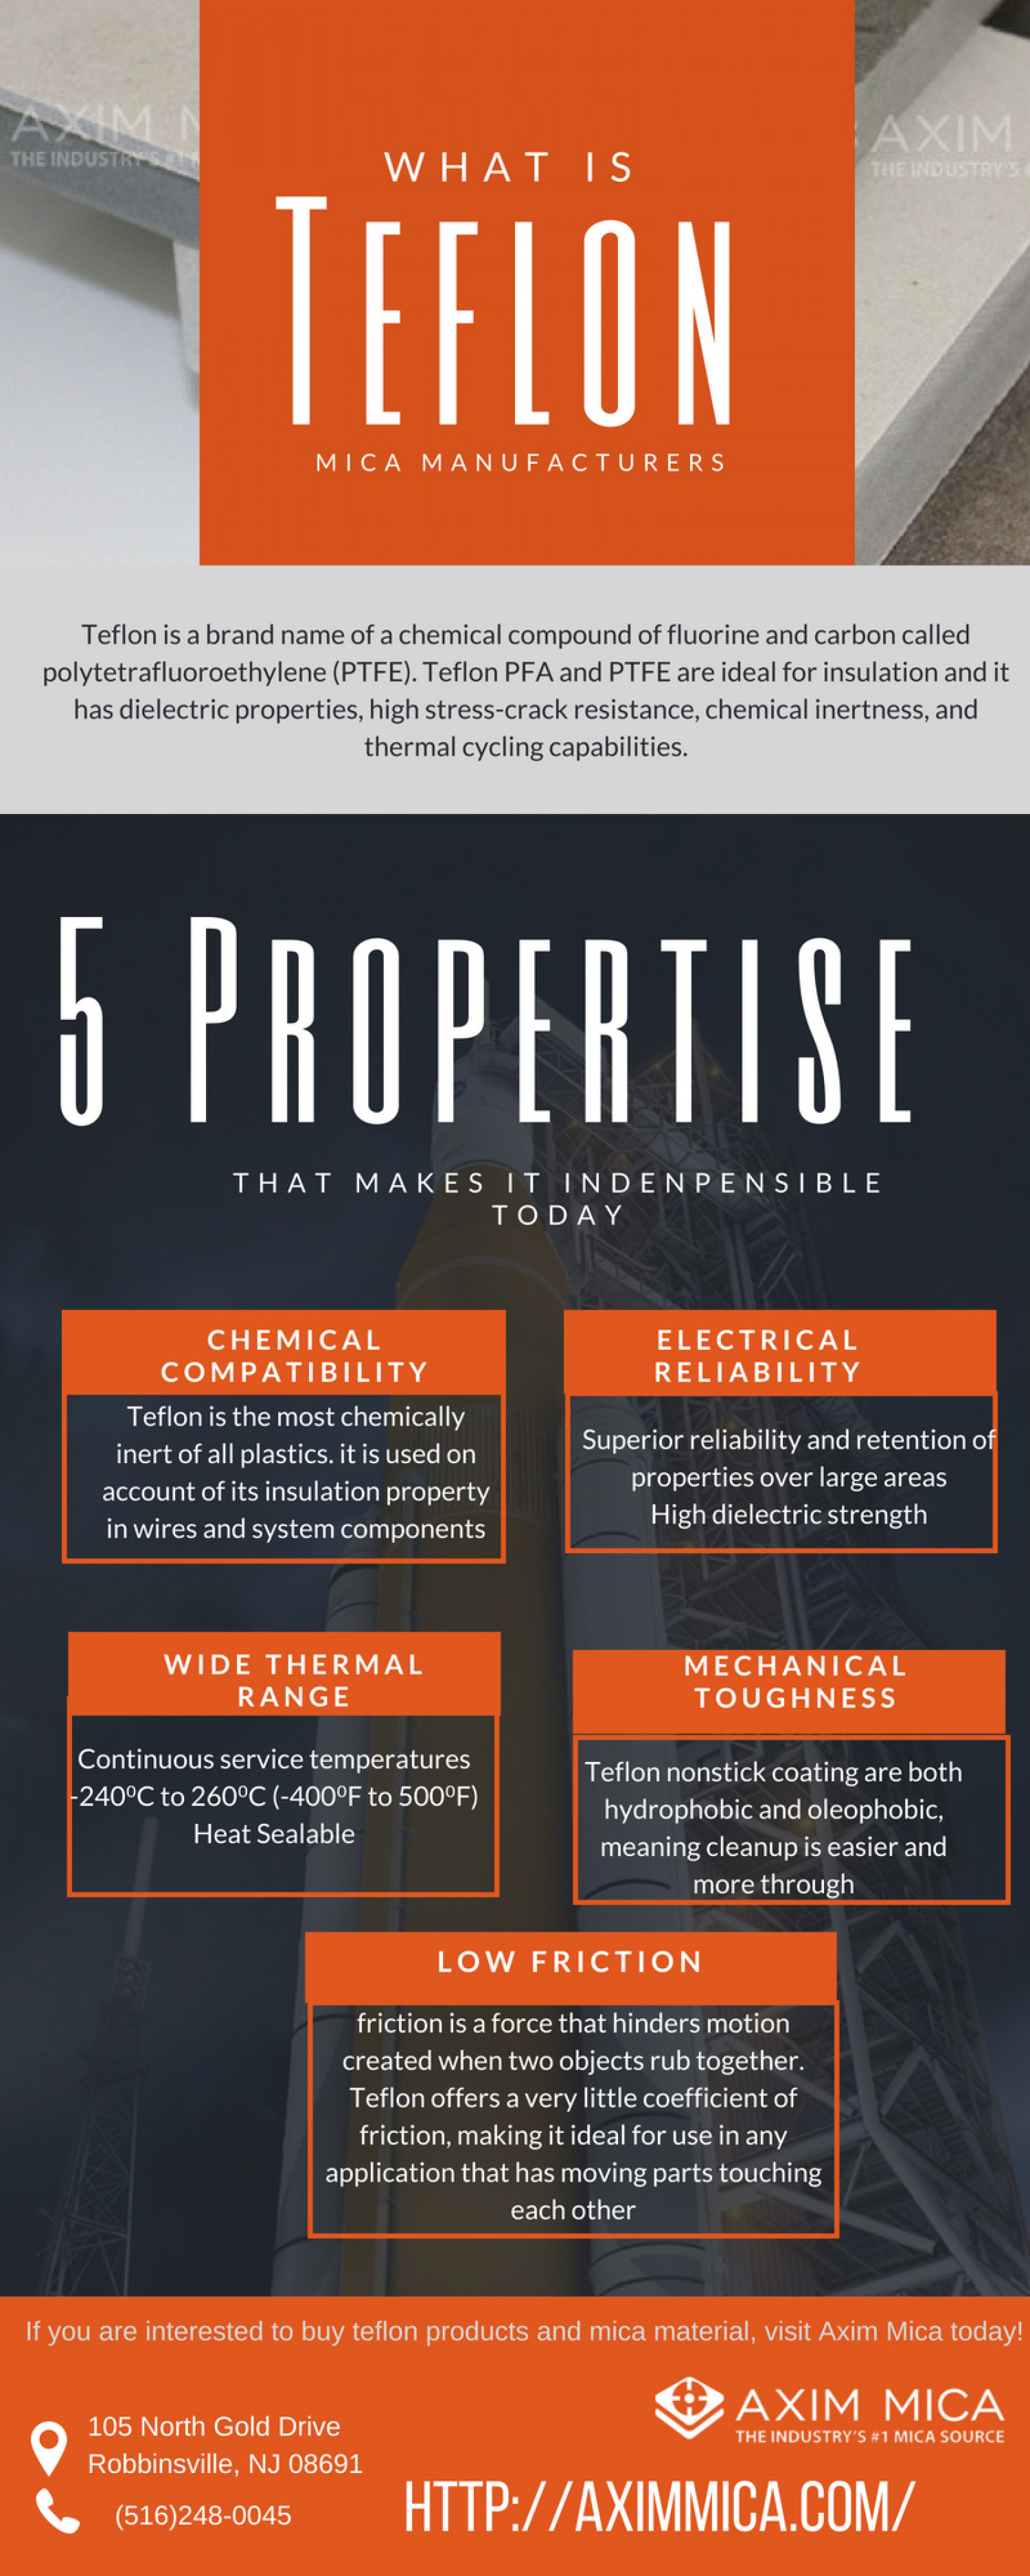 Buy High Performance Teflon Products | Axim Mica Infographic